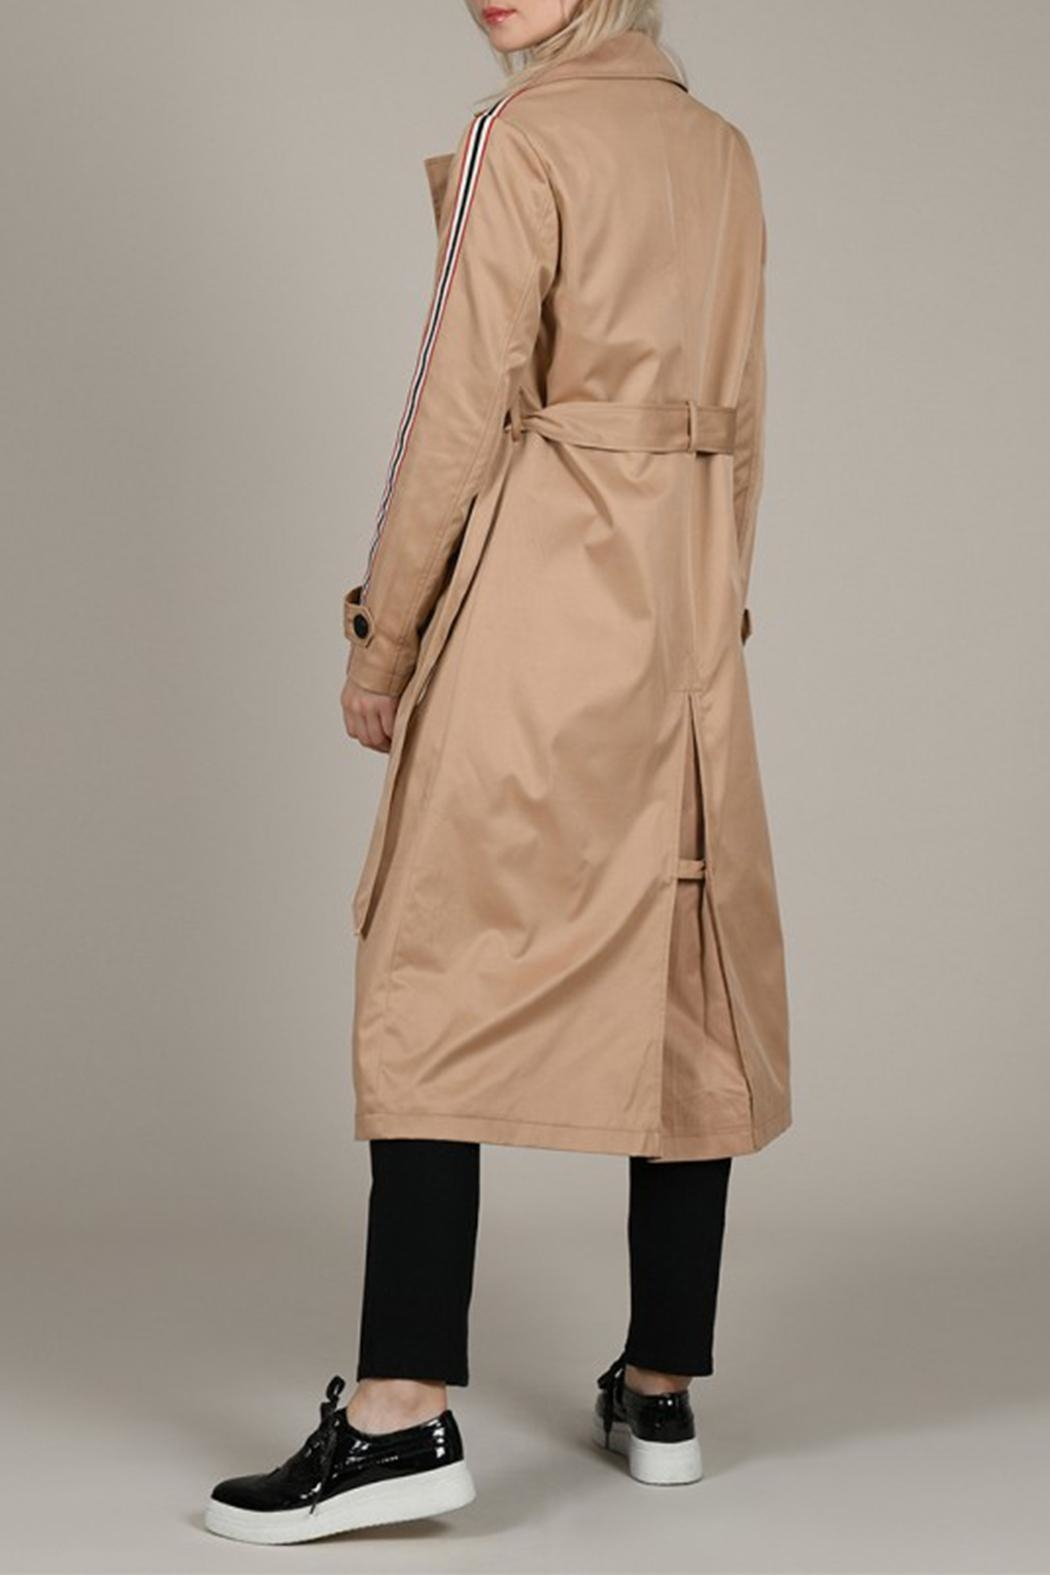 Molly Bracken Band Trench Coat - Side Cropped Image